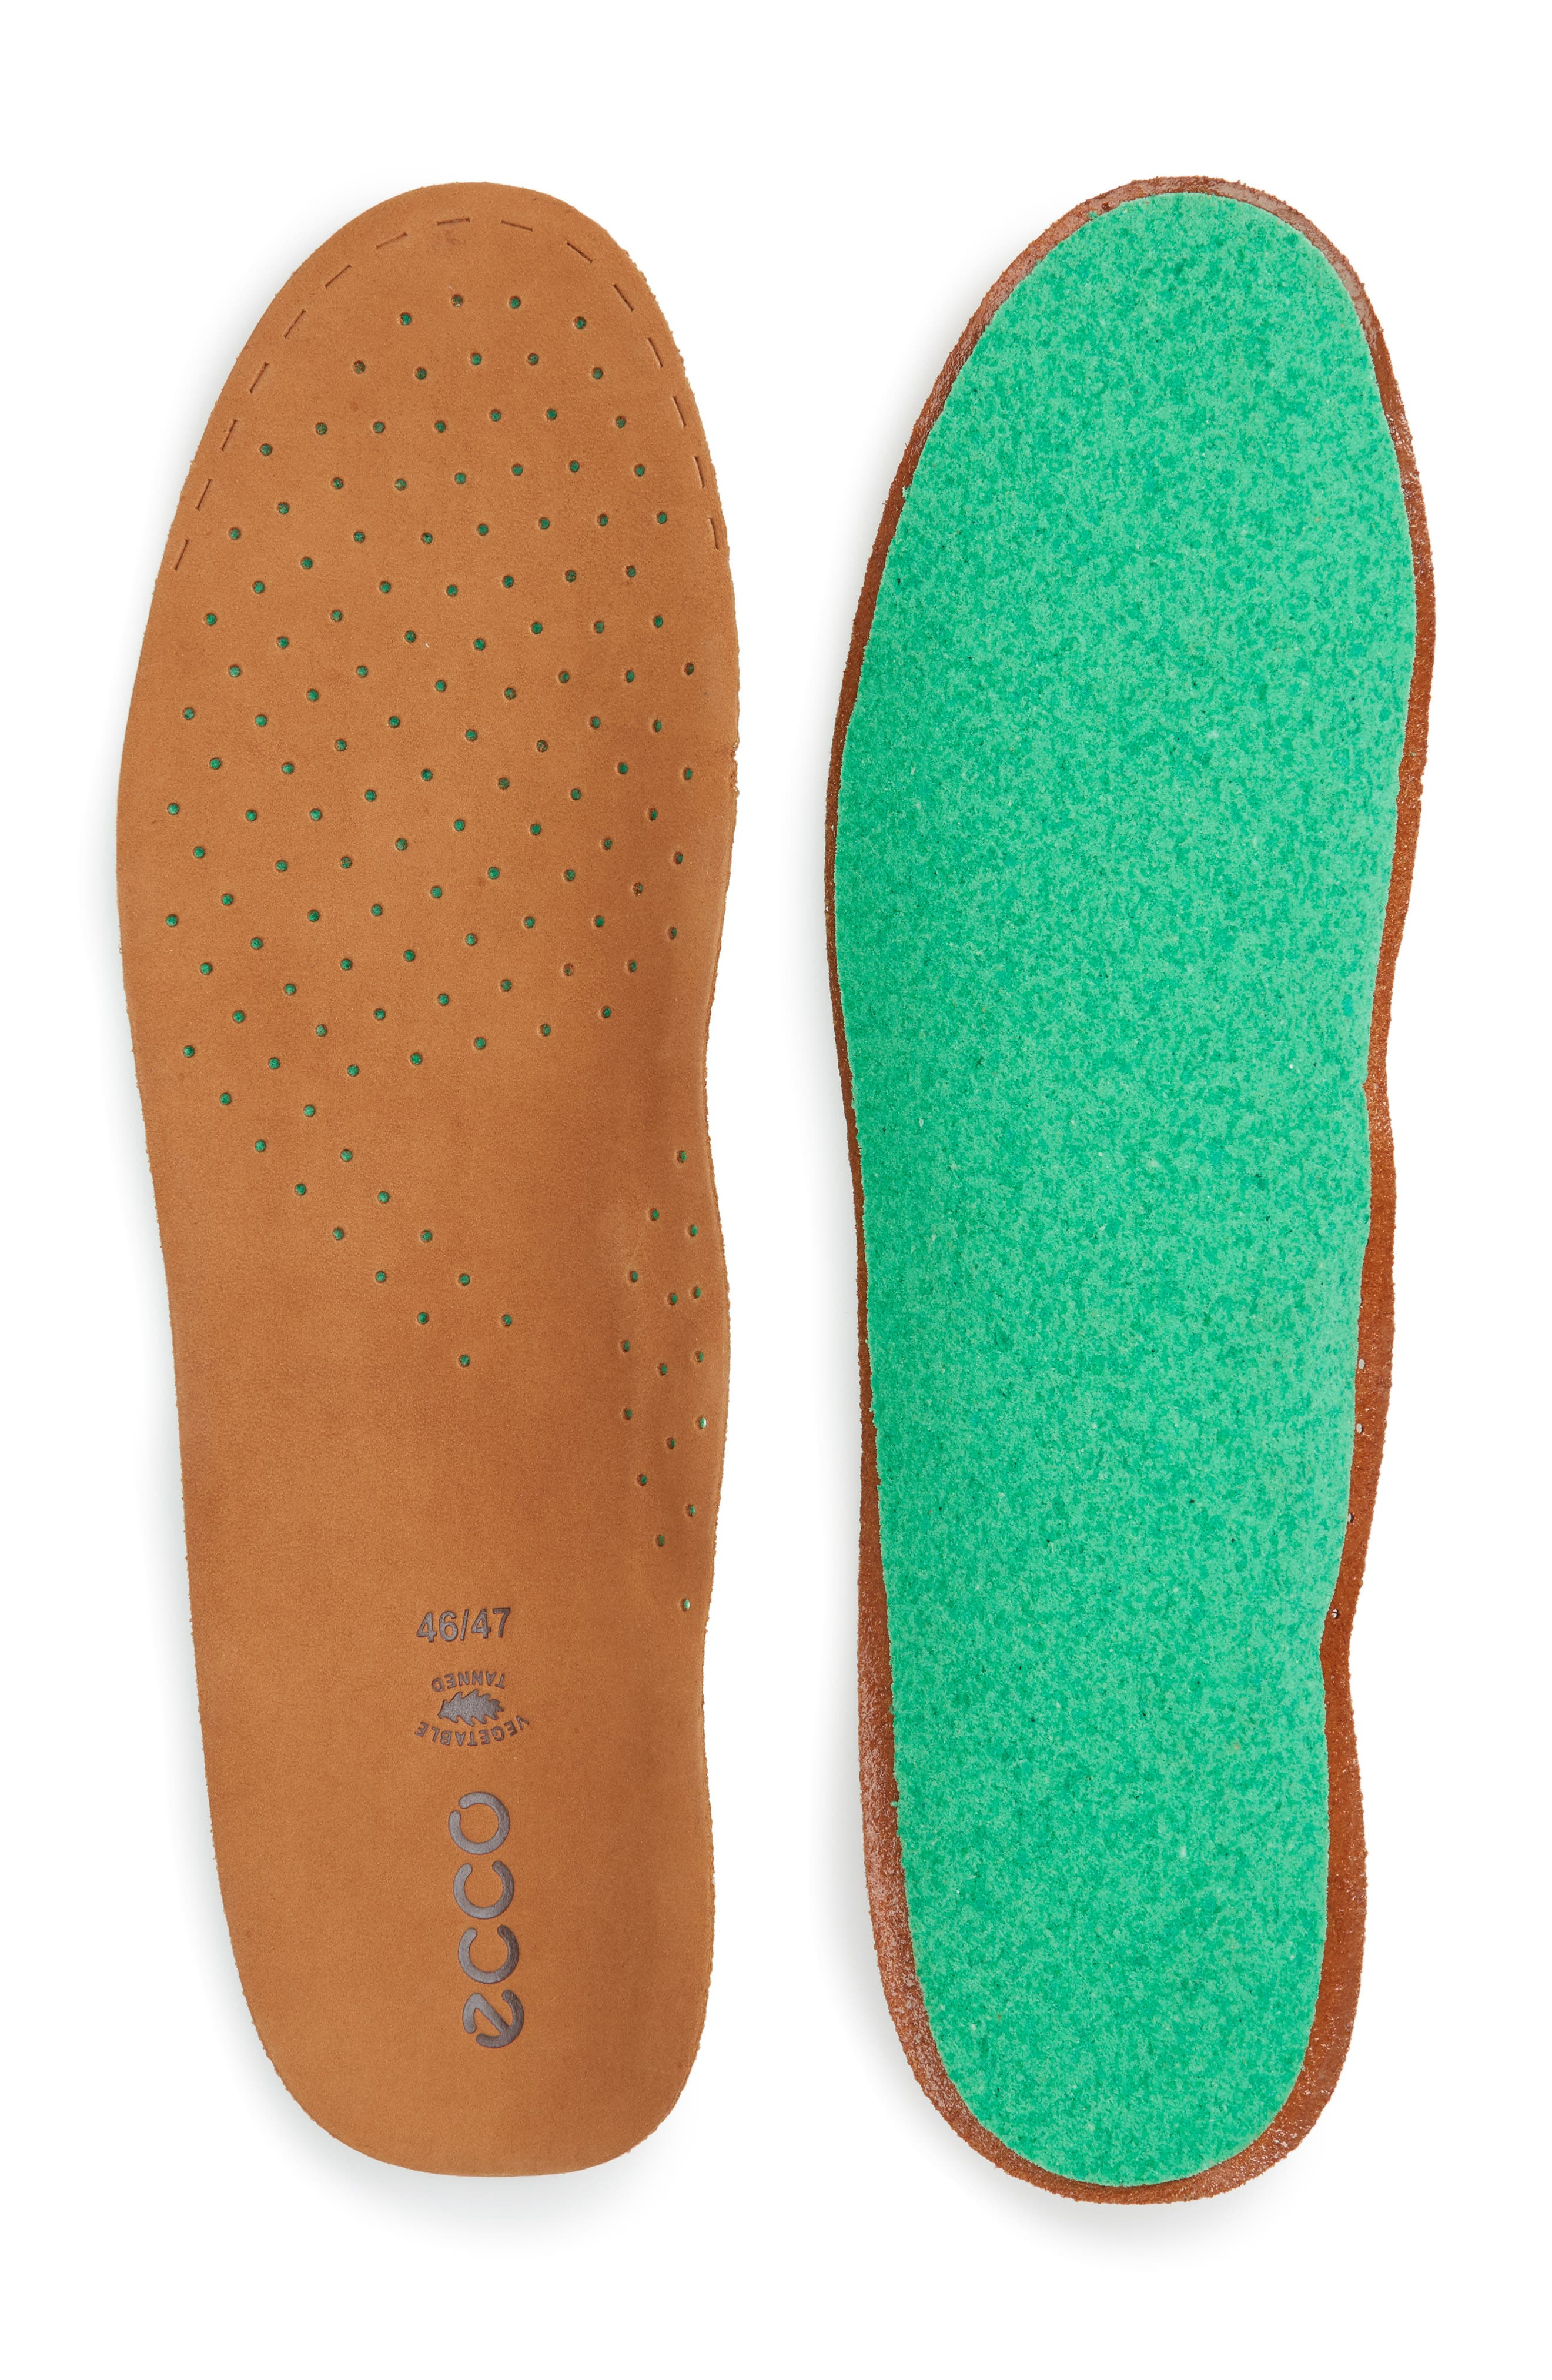 Alternate Image 1 Selected - ECCO Comfort Everyday Insole